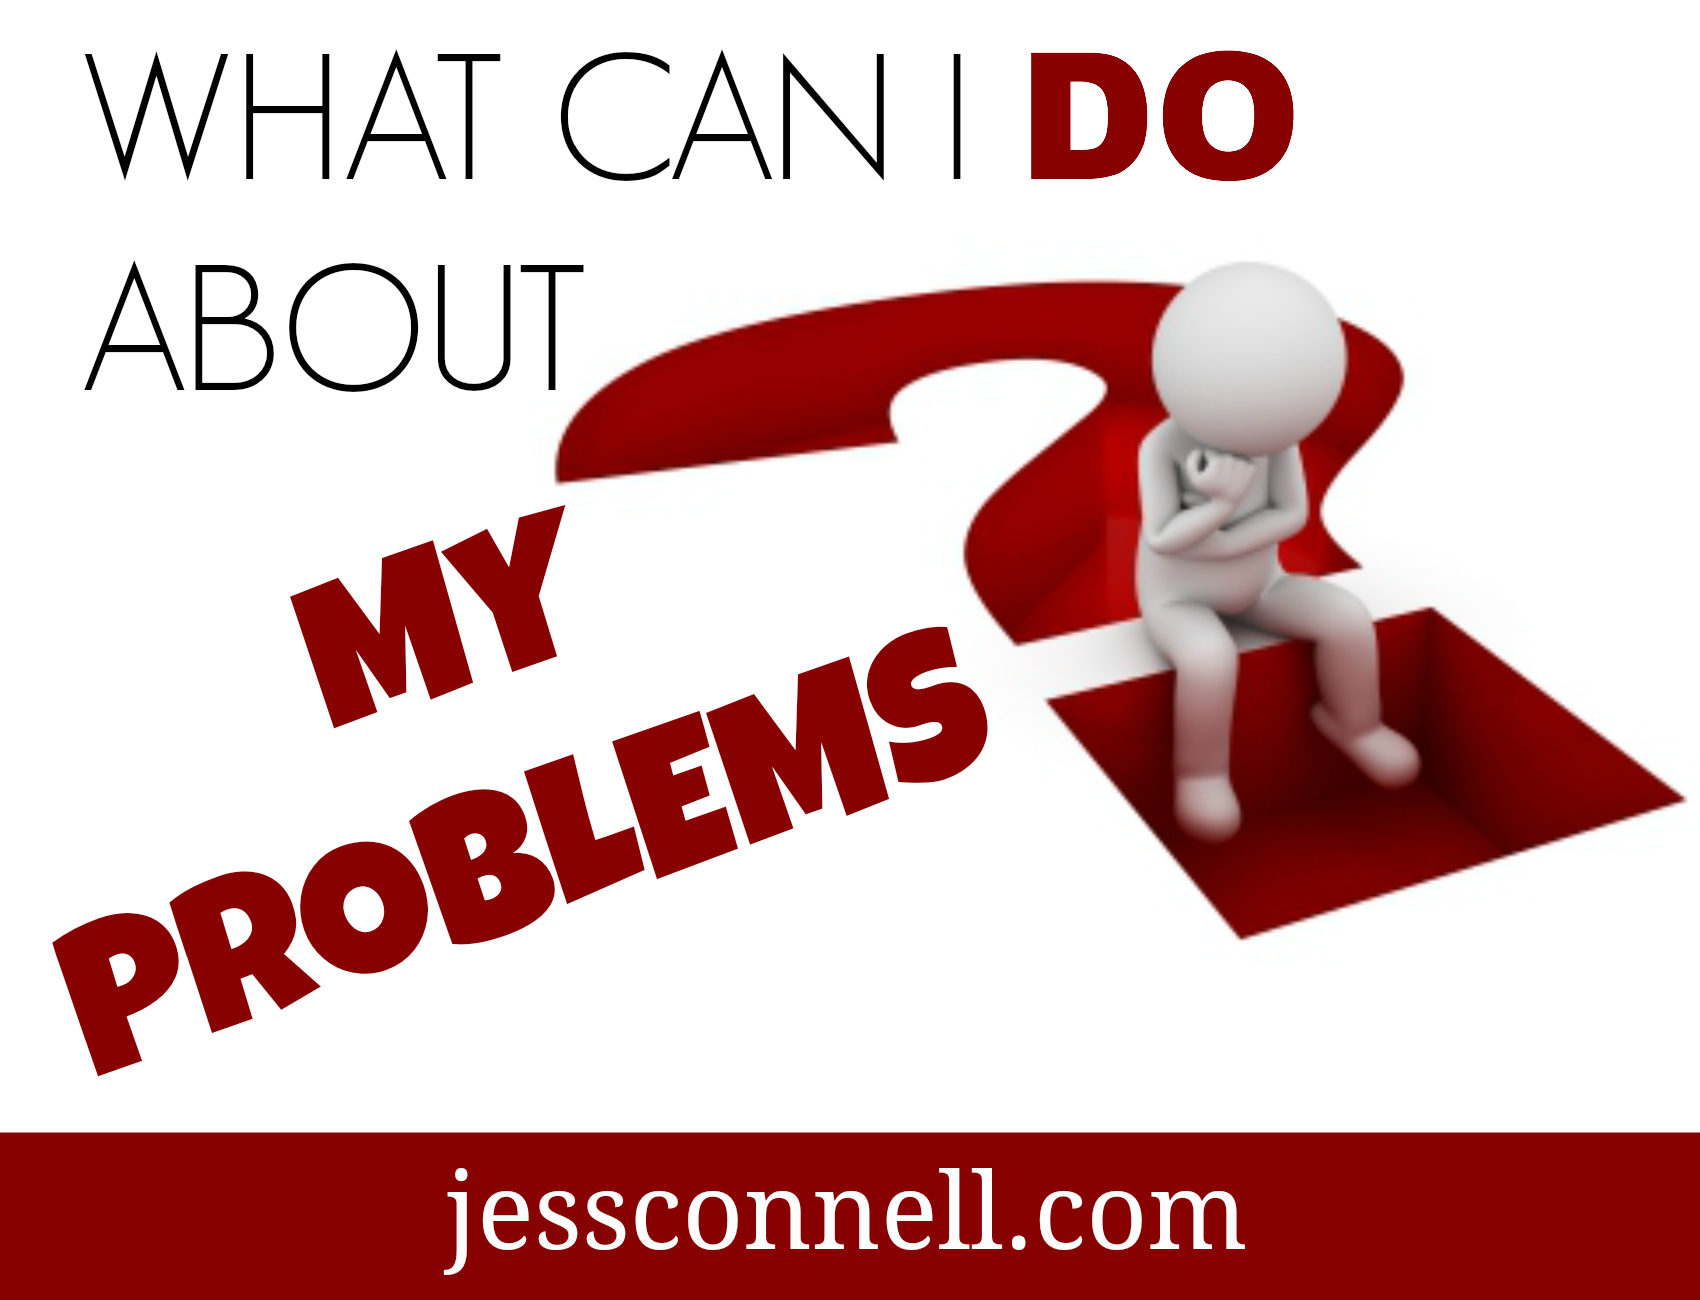 What Can I Do About My Problems? // jessconnell.com